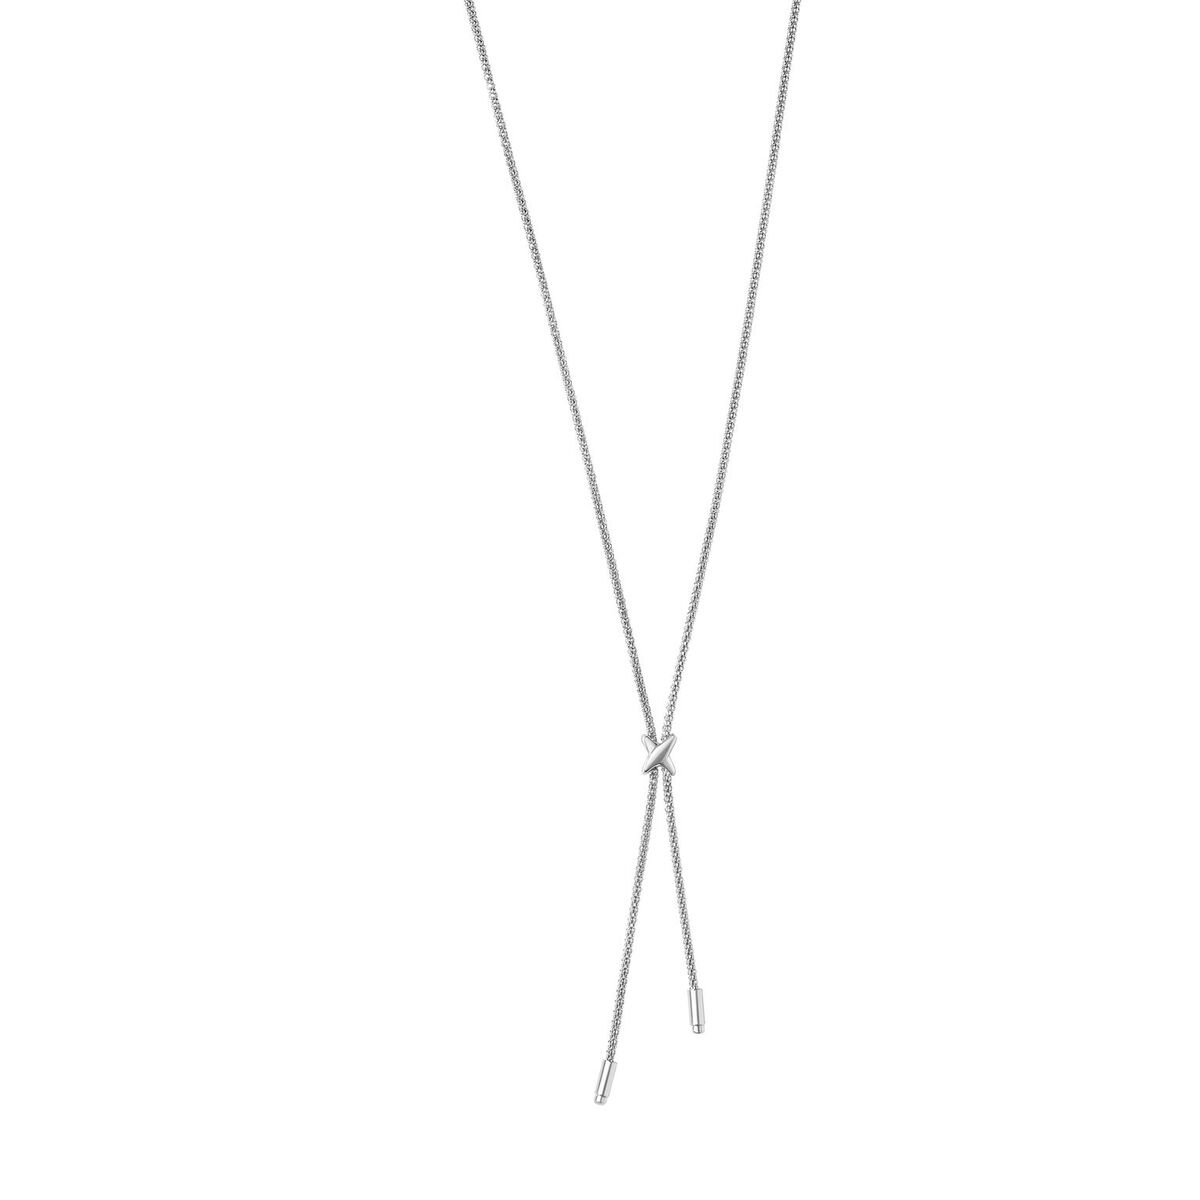 Amanda Rose X Element Lariat Necklace in Sterling Silver (17 in. Chain)